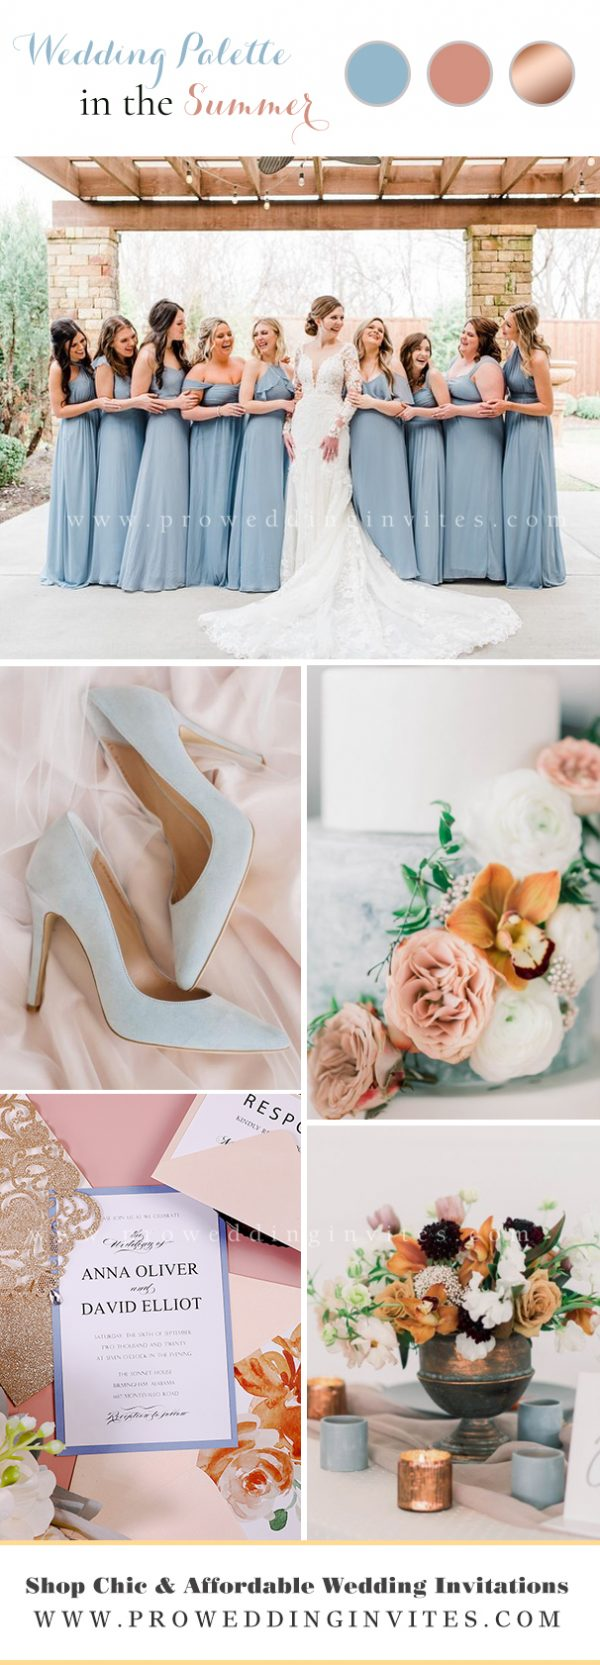 Contemporary Elegant Garden Style Wedding Color Palette: Dusty Coral, Copper and Dusty Blue